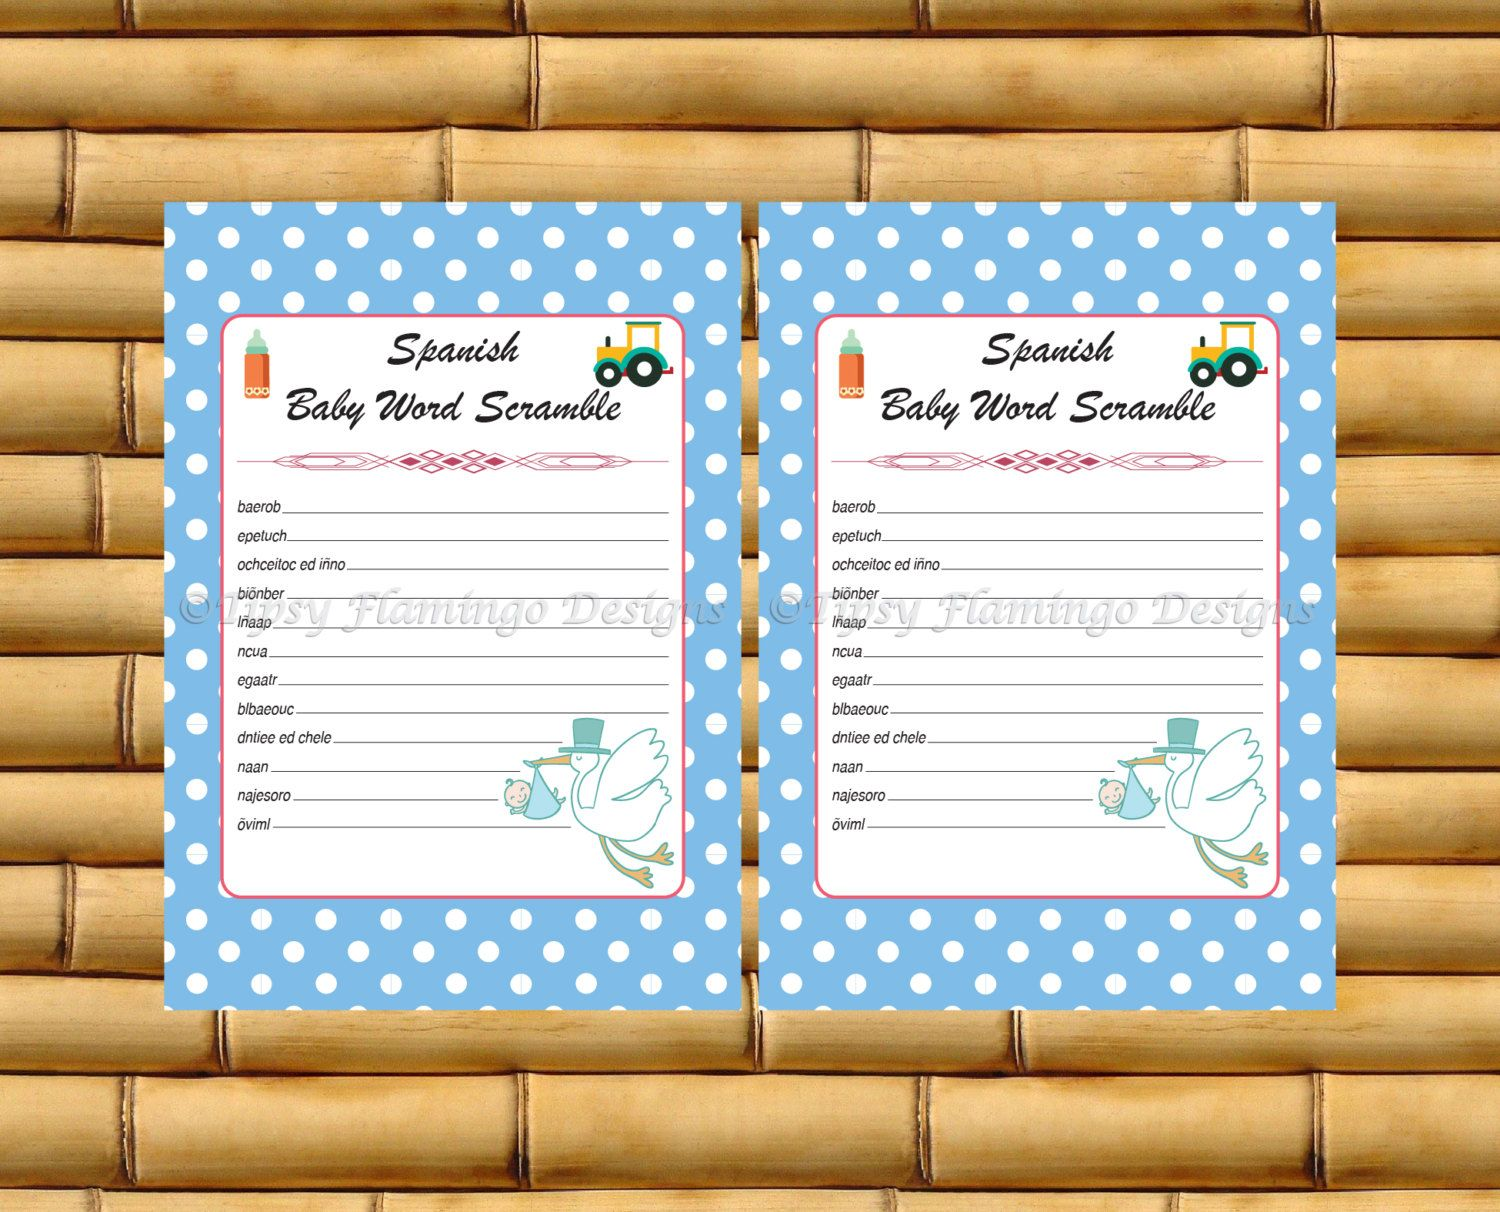 Word Scramble Spanish Baby Shower Baby Shower Game Espanol Stork Boy Blue White Poka